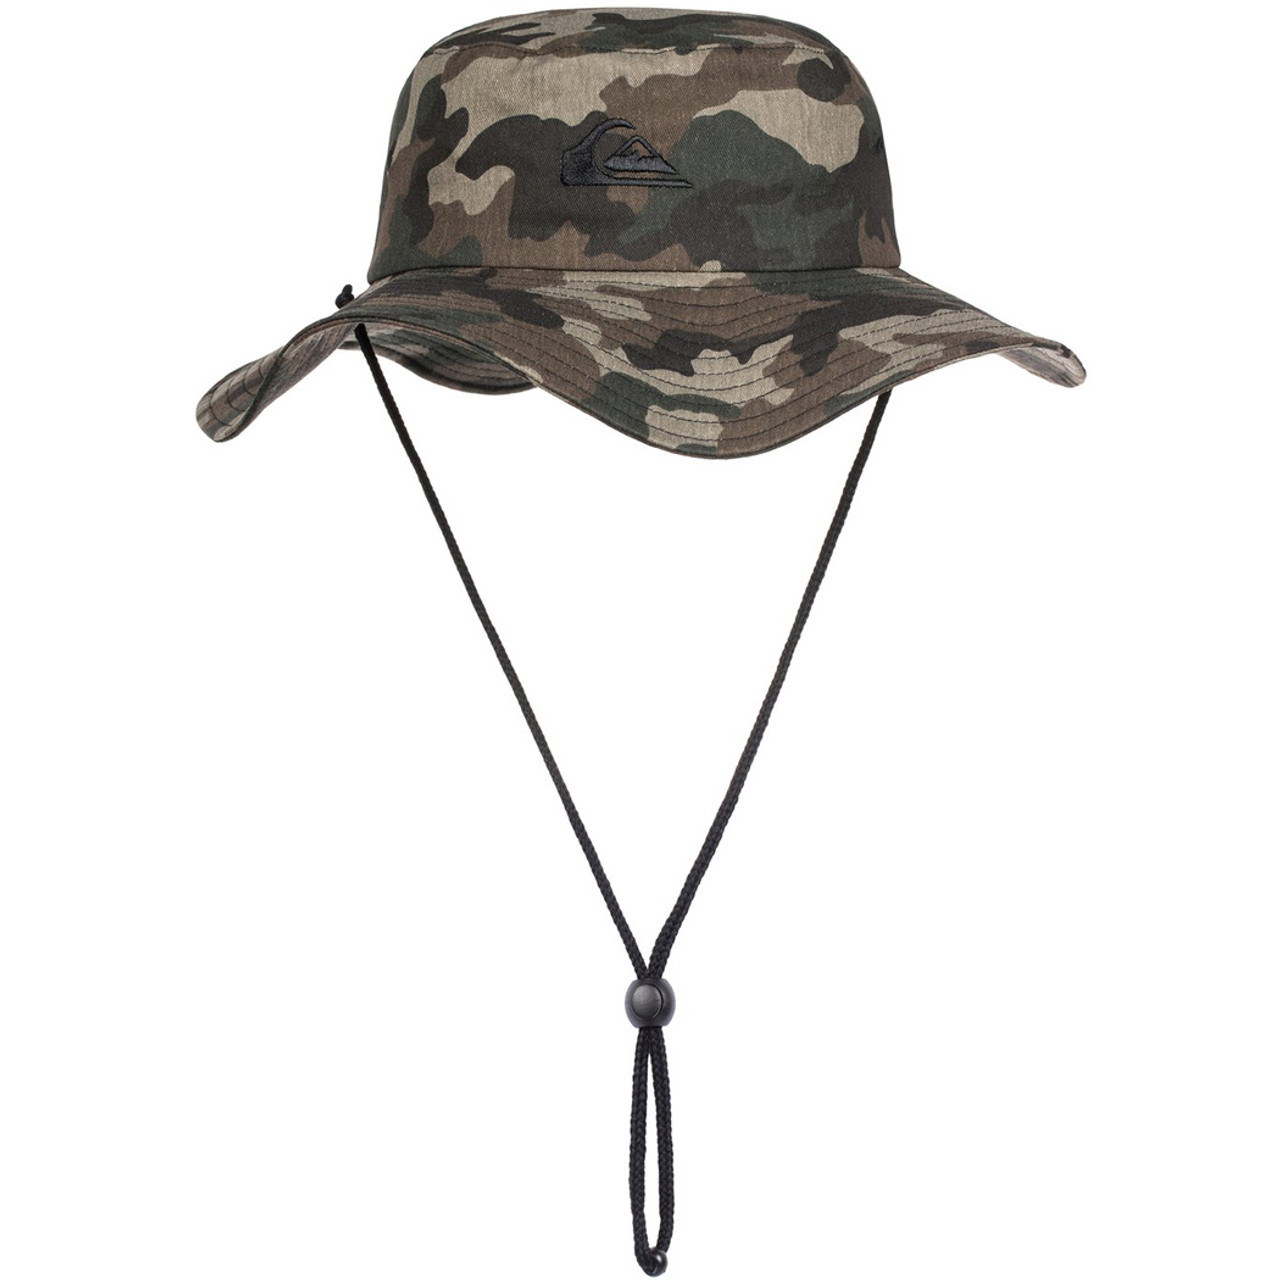 ff5314d00ed Quiksilver Hat - Bushmaster Bucket - Camo - Surf and Dirt